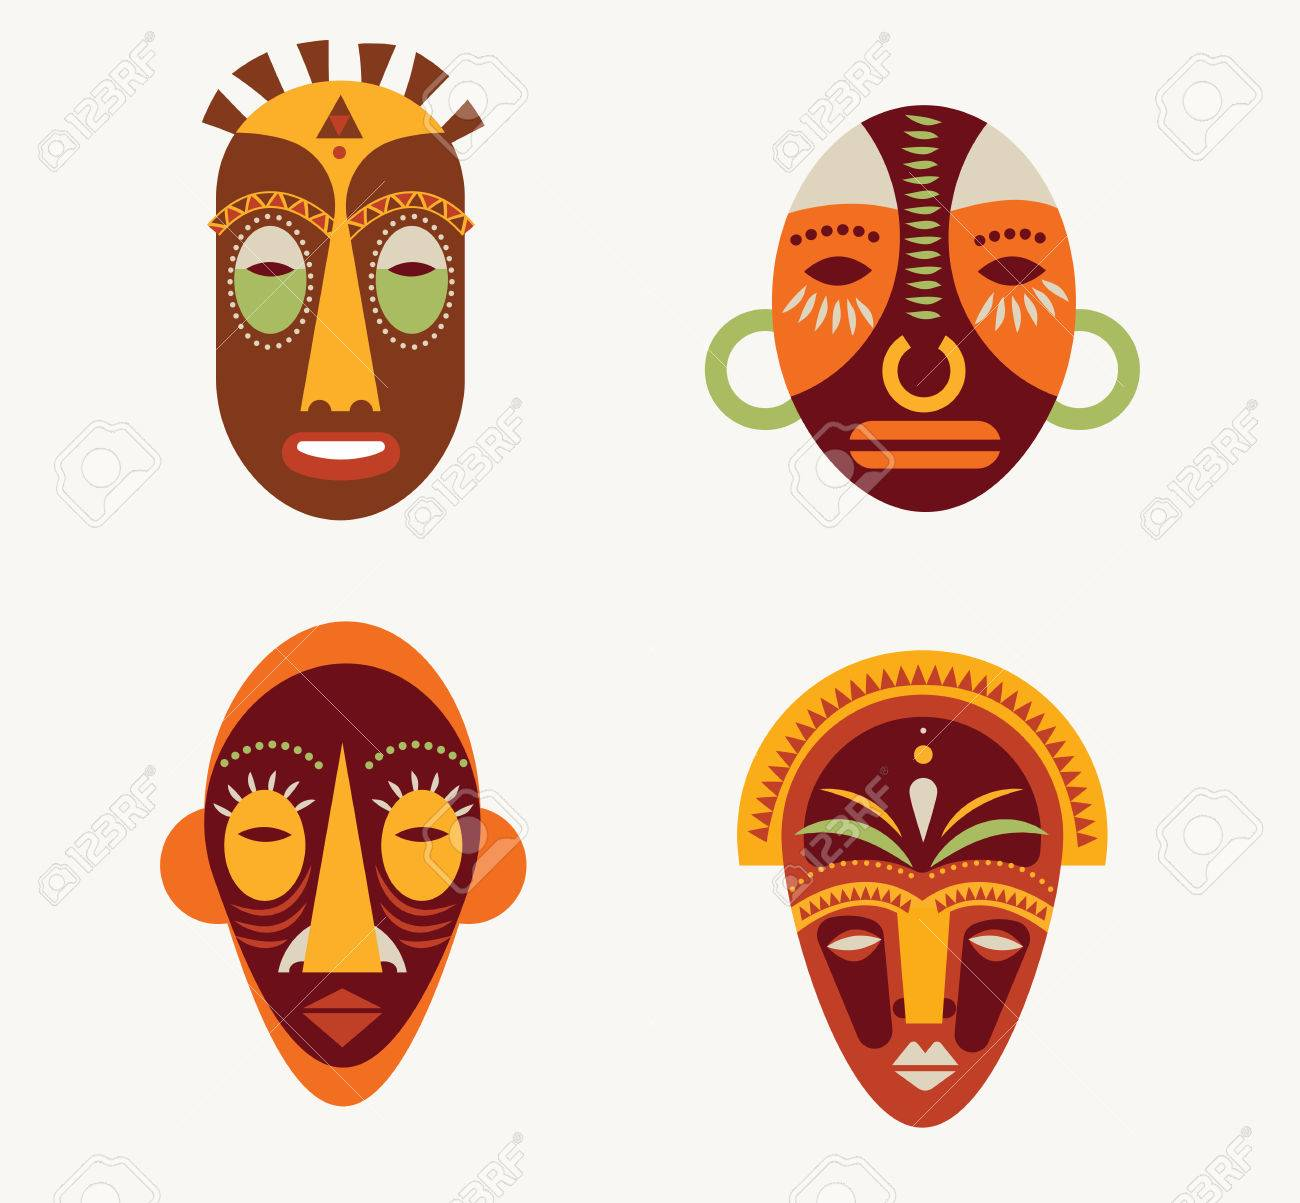 african masks set of icons royalty free cliparts vectors and stock